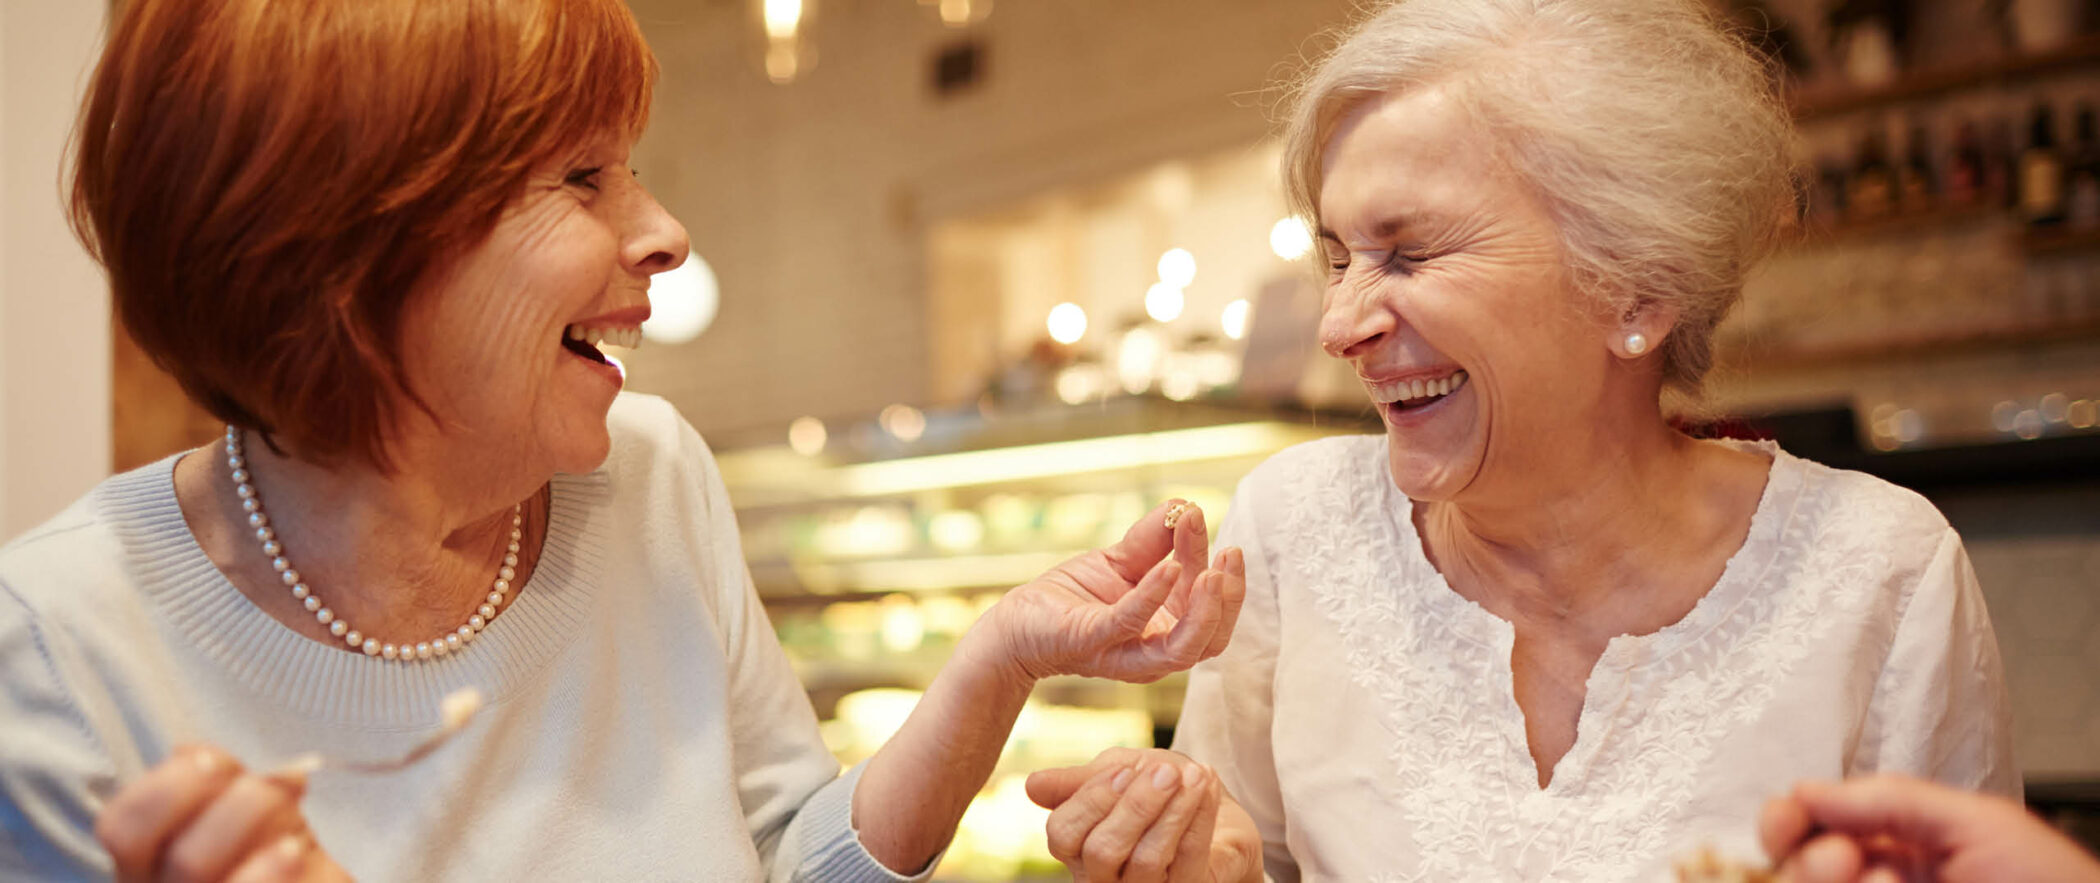 Senior women enjoy coffee and dessert while smiling and laughing